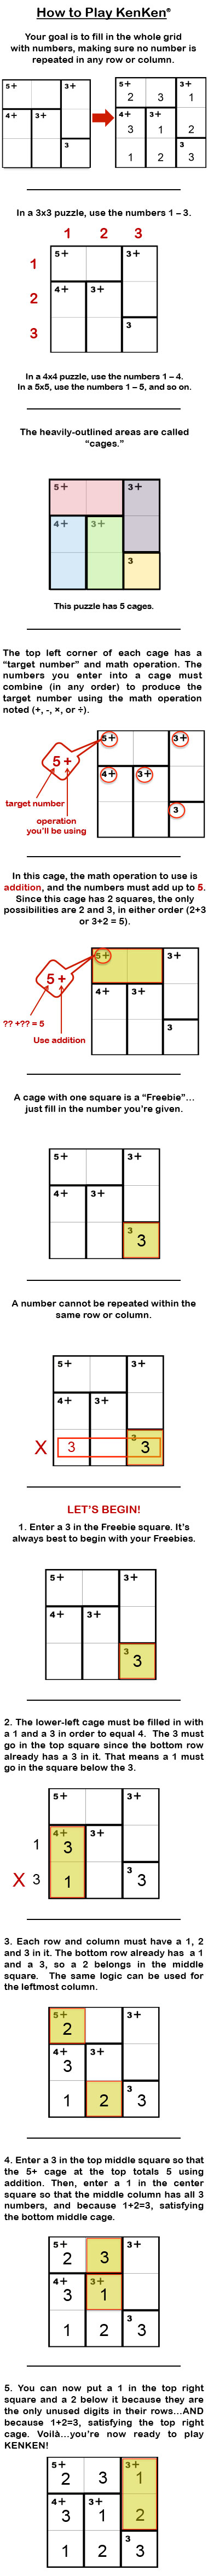 Kenken Puzzle Rules - How To Play This Amazing Puzzle & Brain Teaser! - Printable Kenken Puzzles 3X3